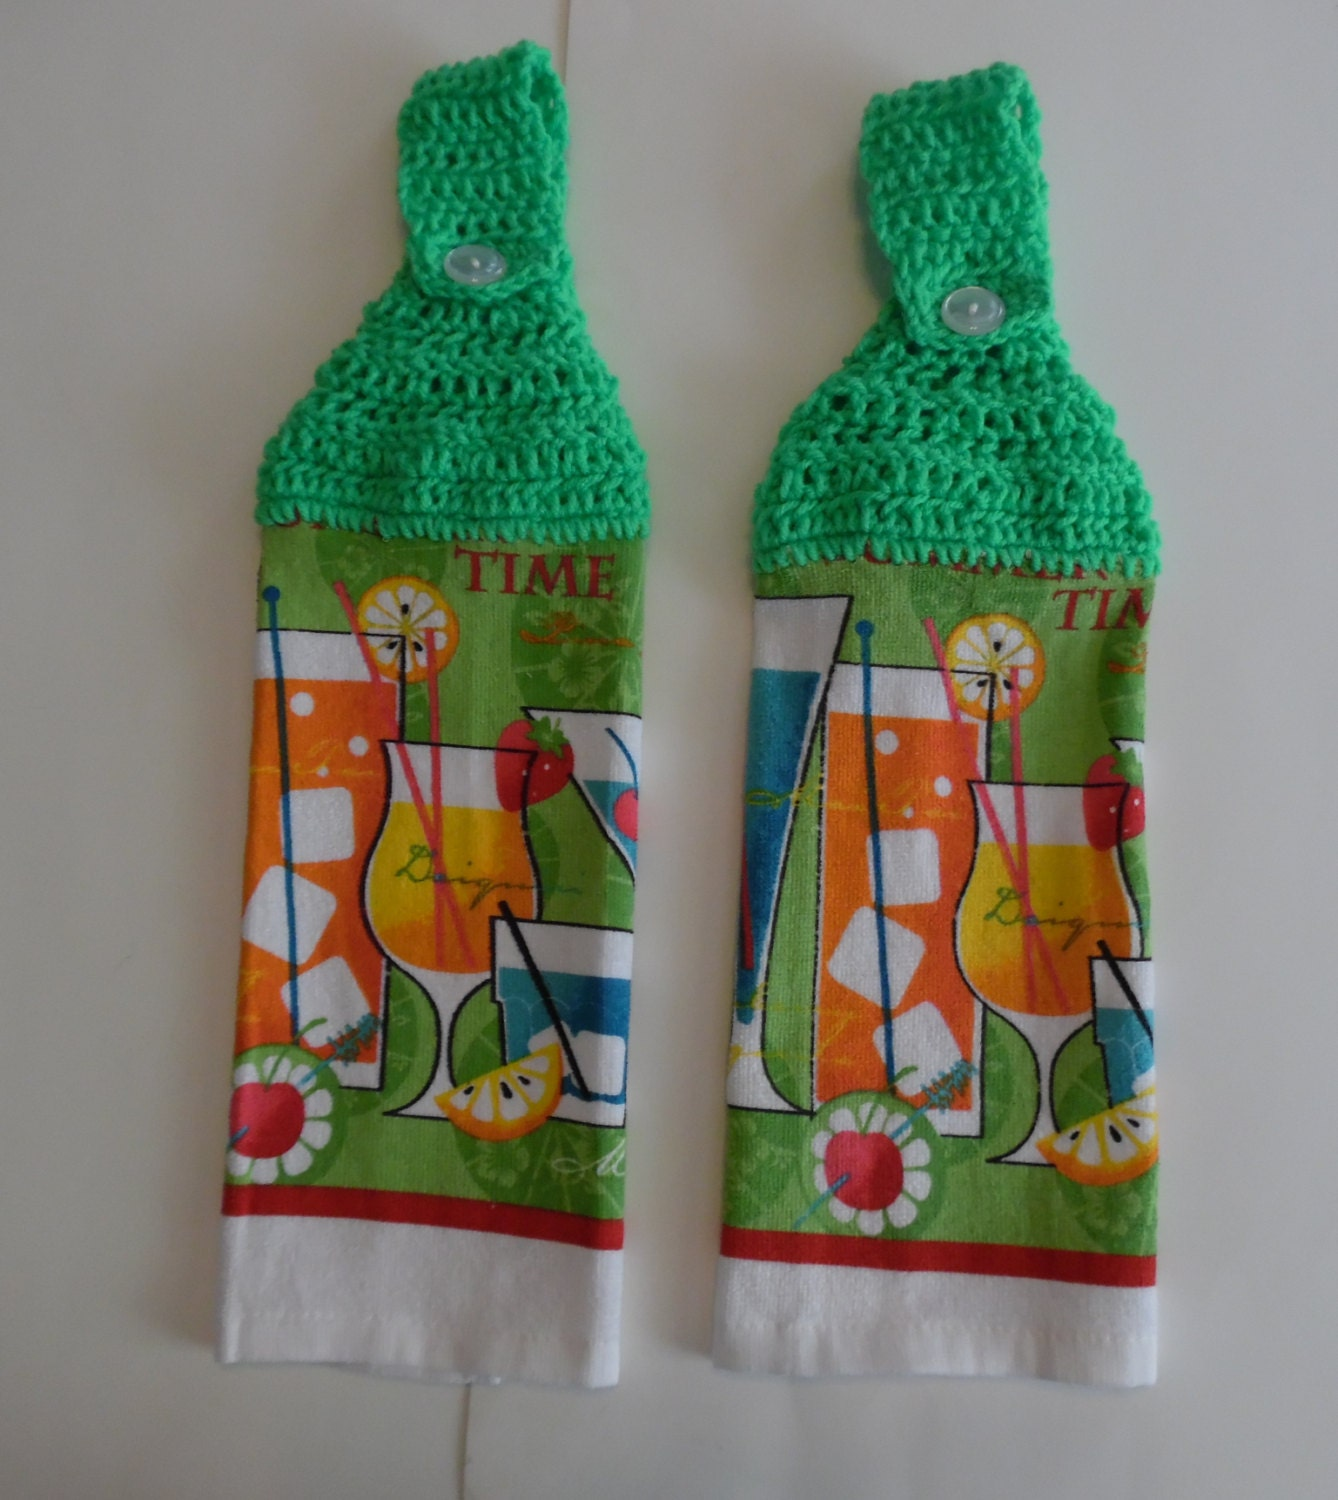 Crochet Kitchen Towel : crochet summer towel kitchen towel kitchen by donnascraftcorner